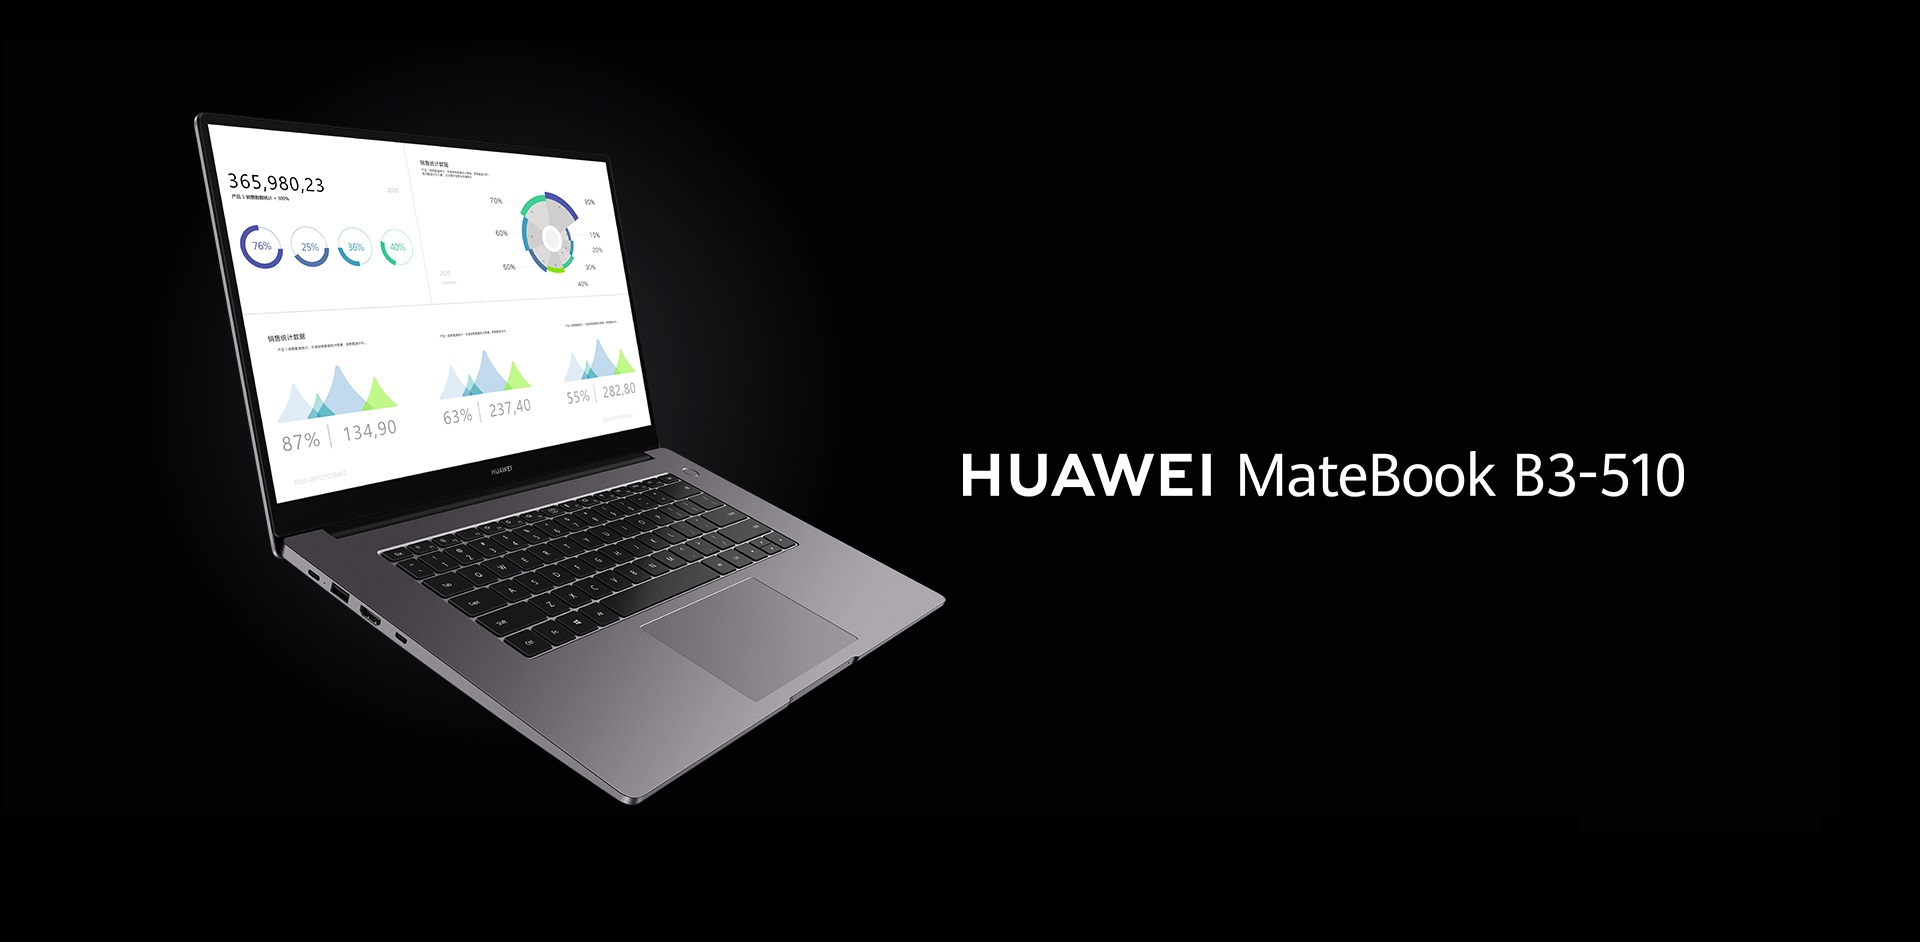 Huawei MateBook B3-510 laptop